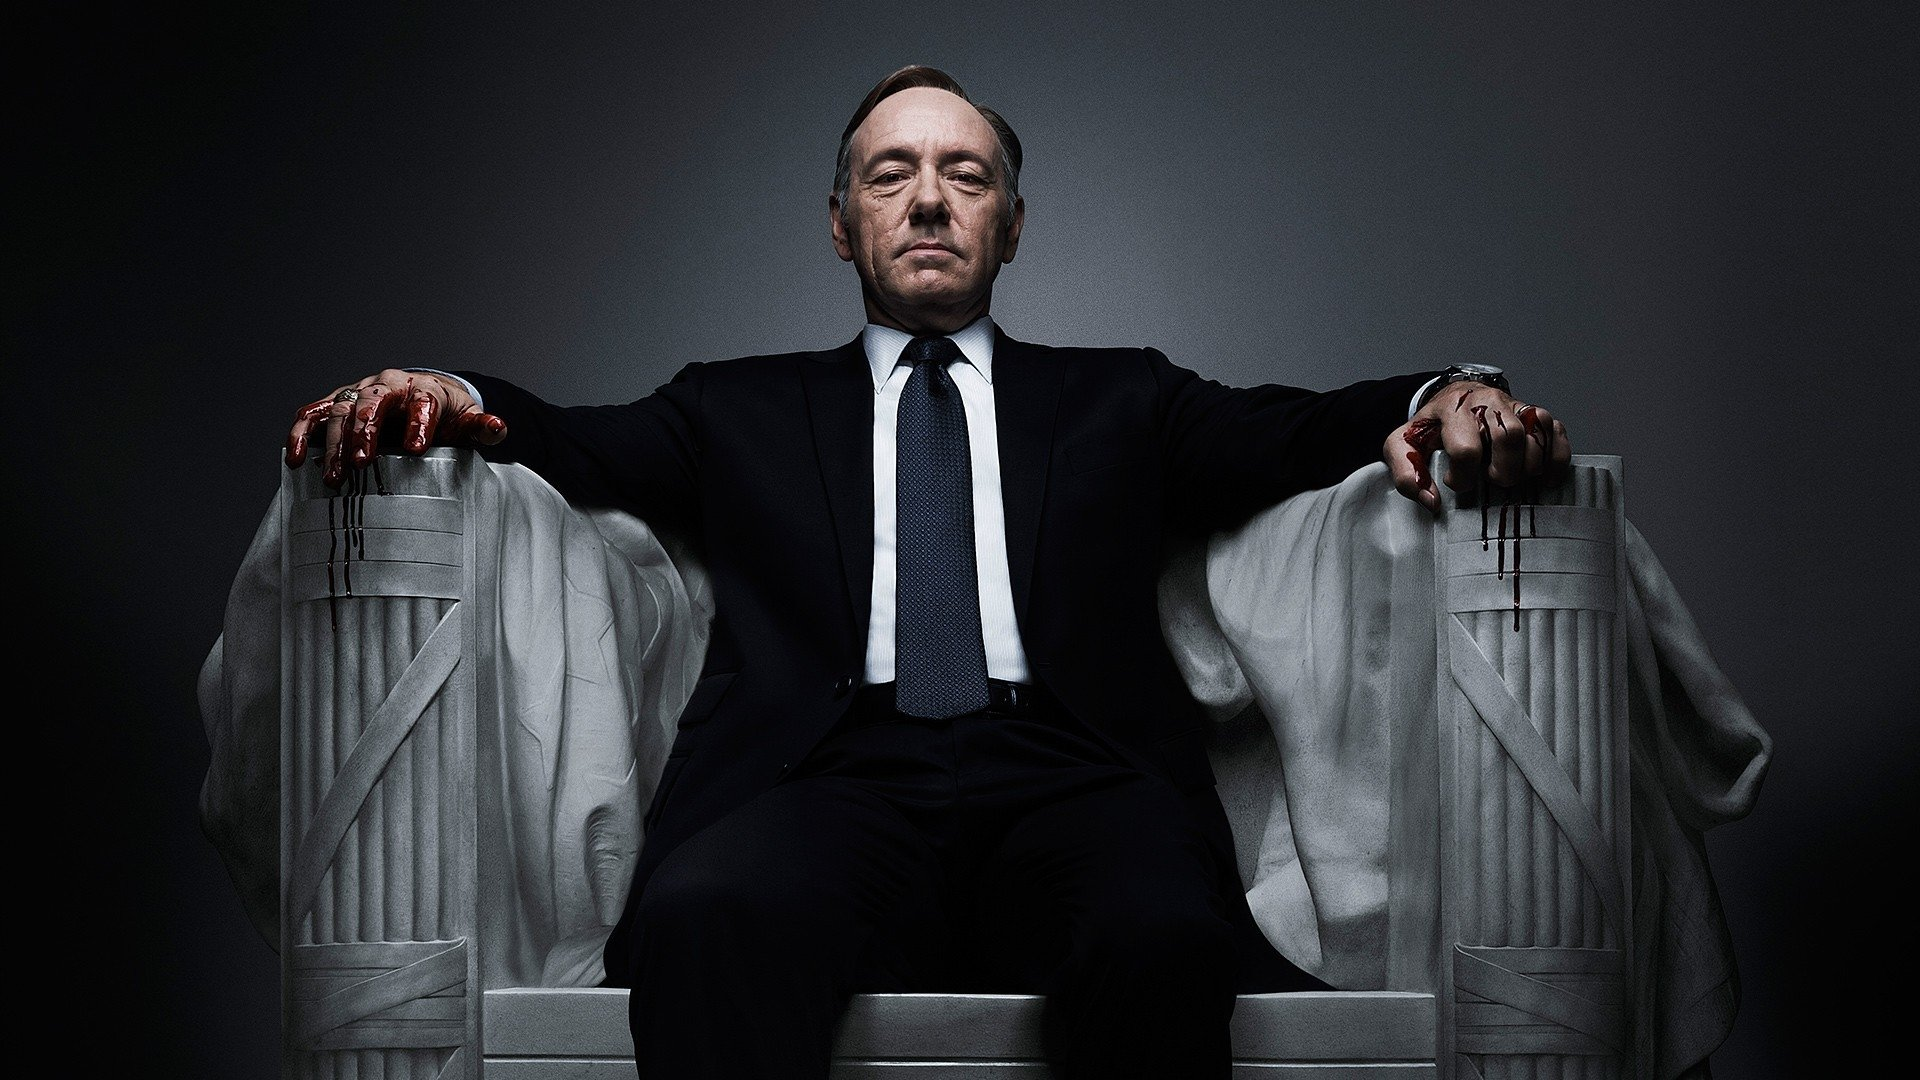 1920x1080 - Kevin Spacey Wallpapers 2